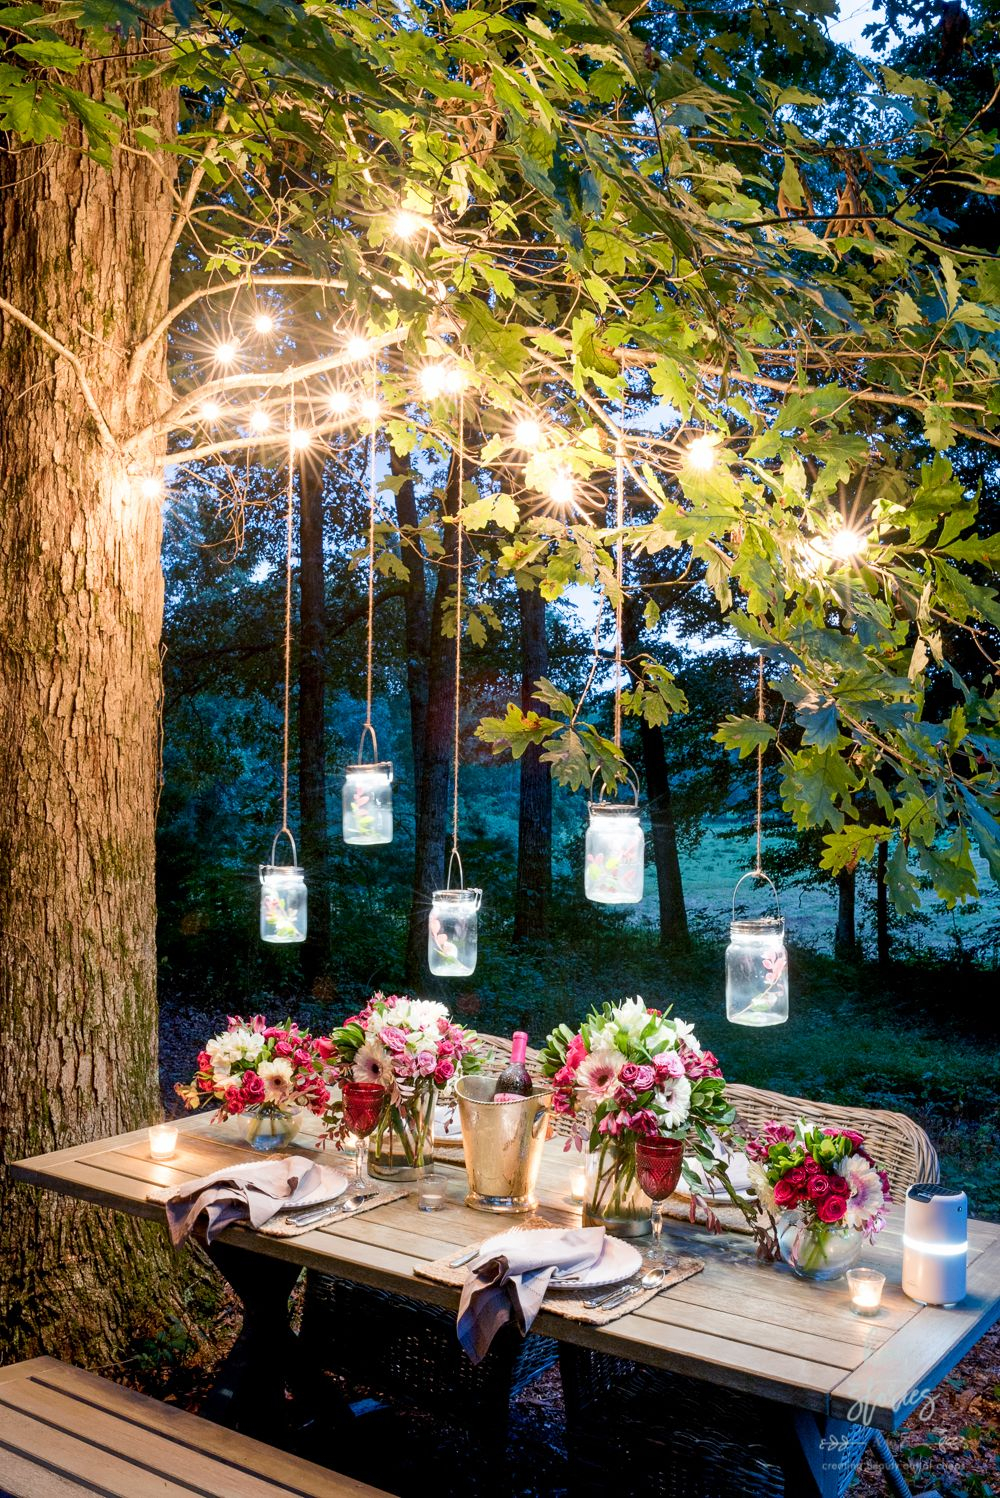 25 Backyard Lighting Ideas How To Hang Outdoor String Lights intended for Decorating Backyard With Lights